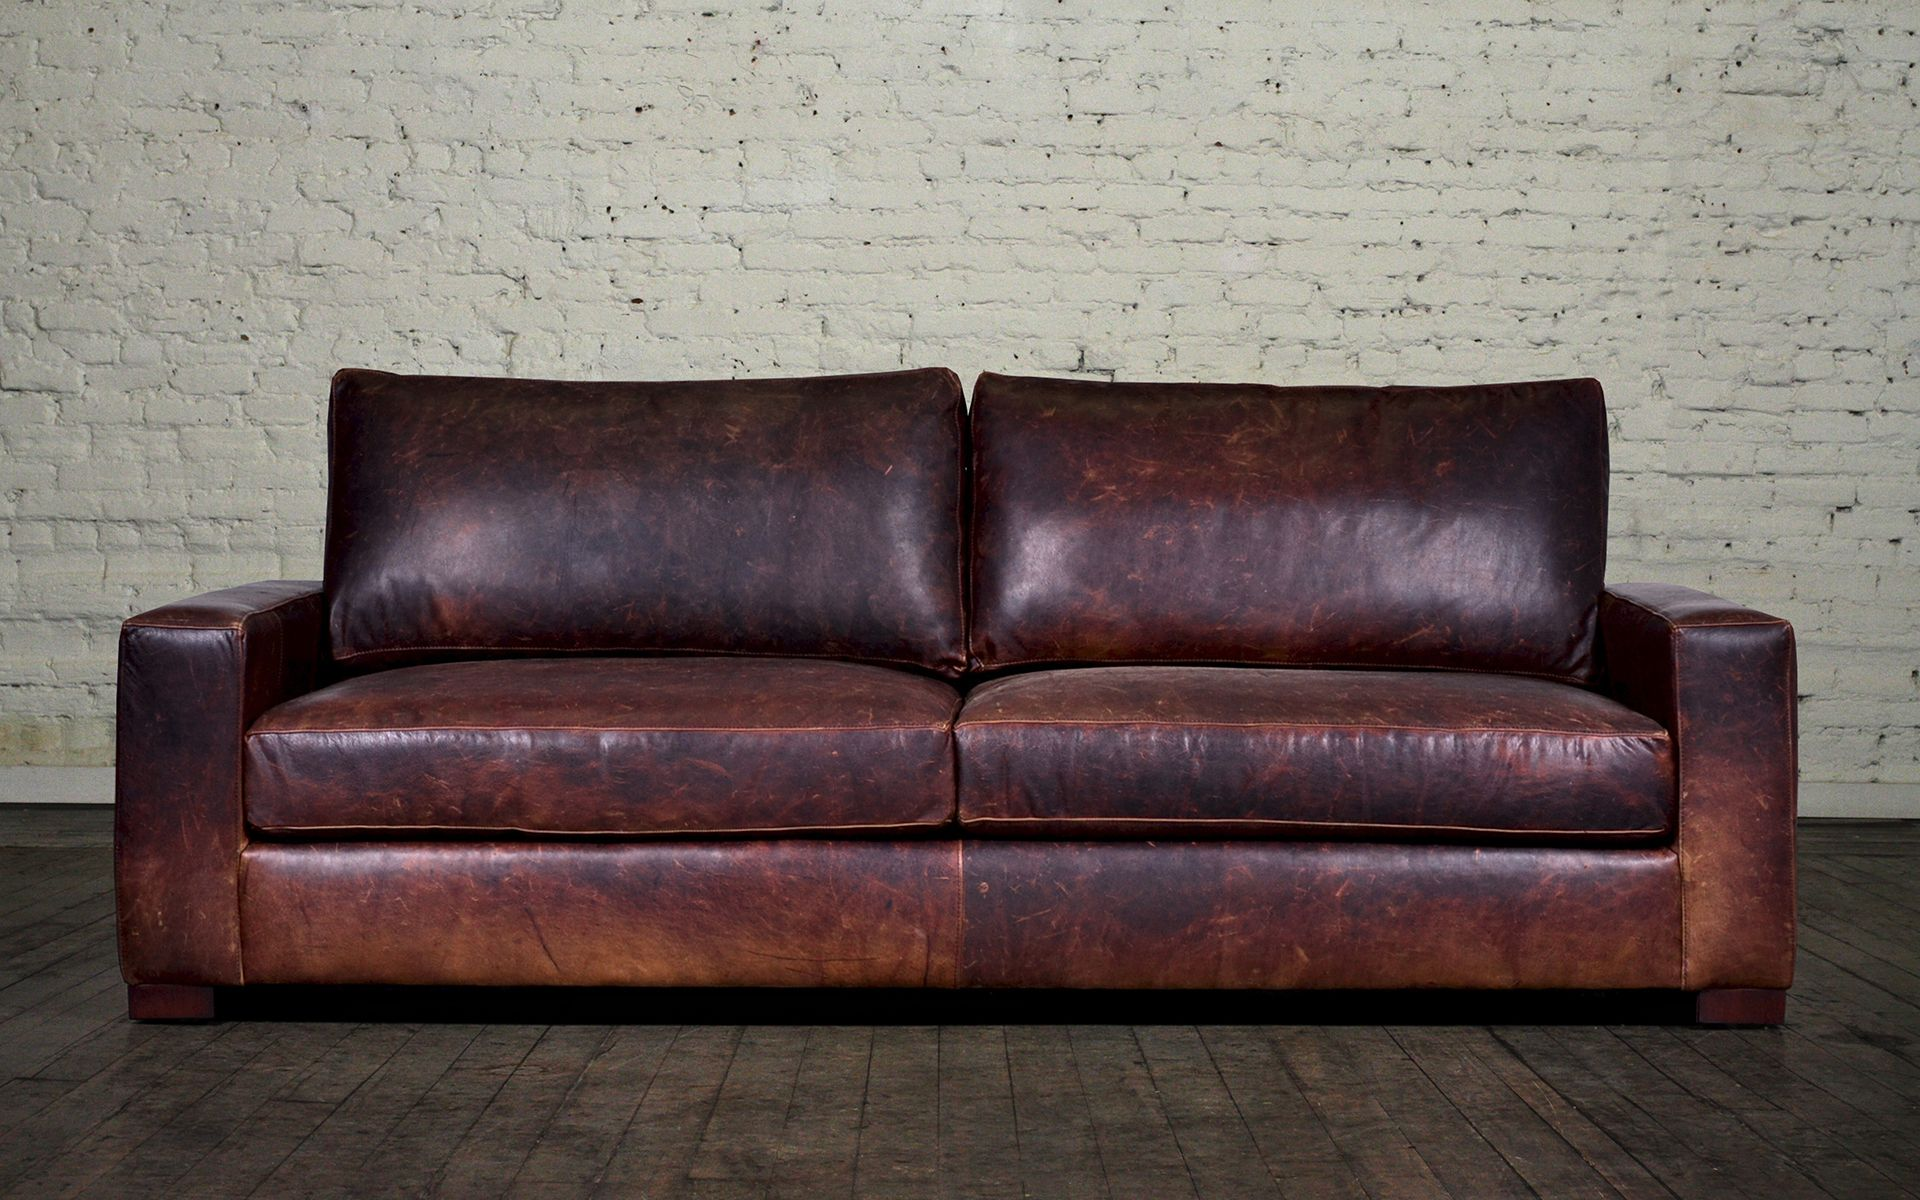 COCOCO Home Monroe Sofa vs Restoration Hardware Maxwell Sofa